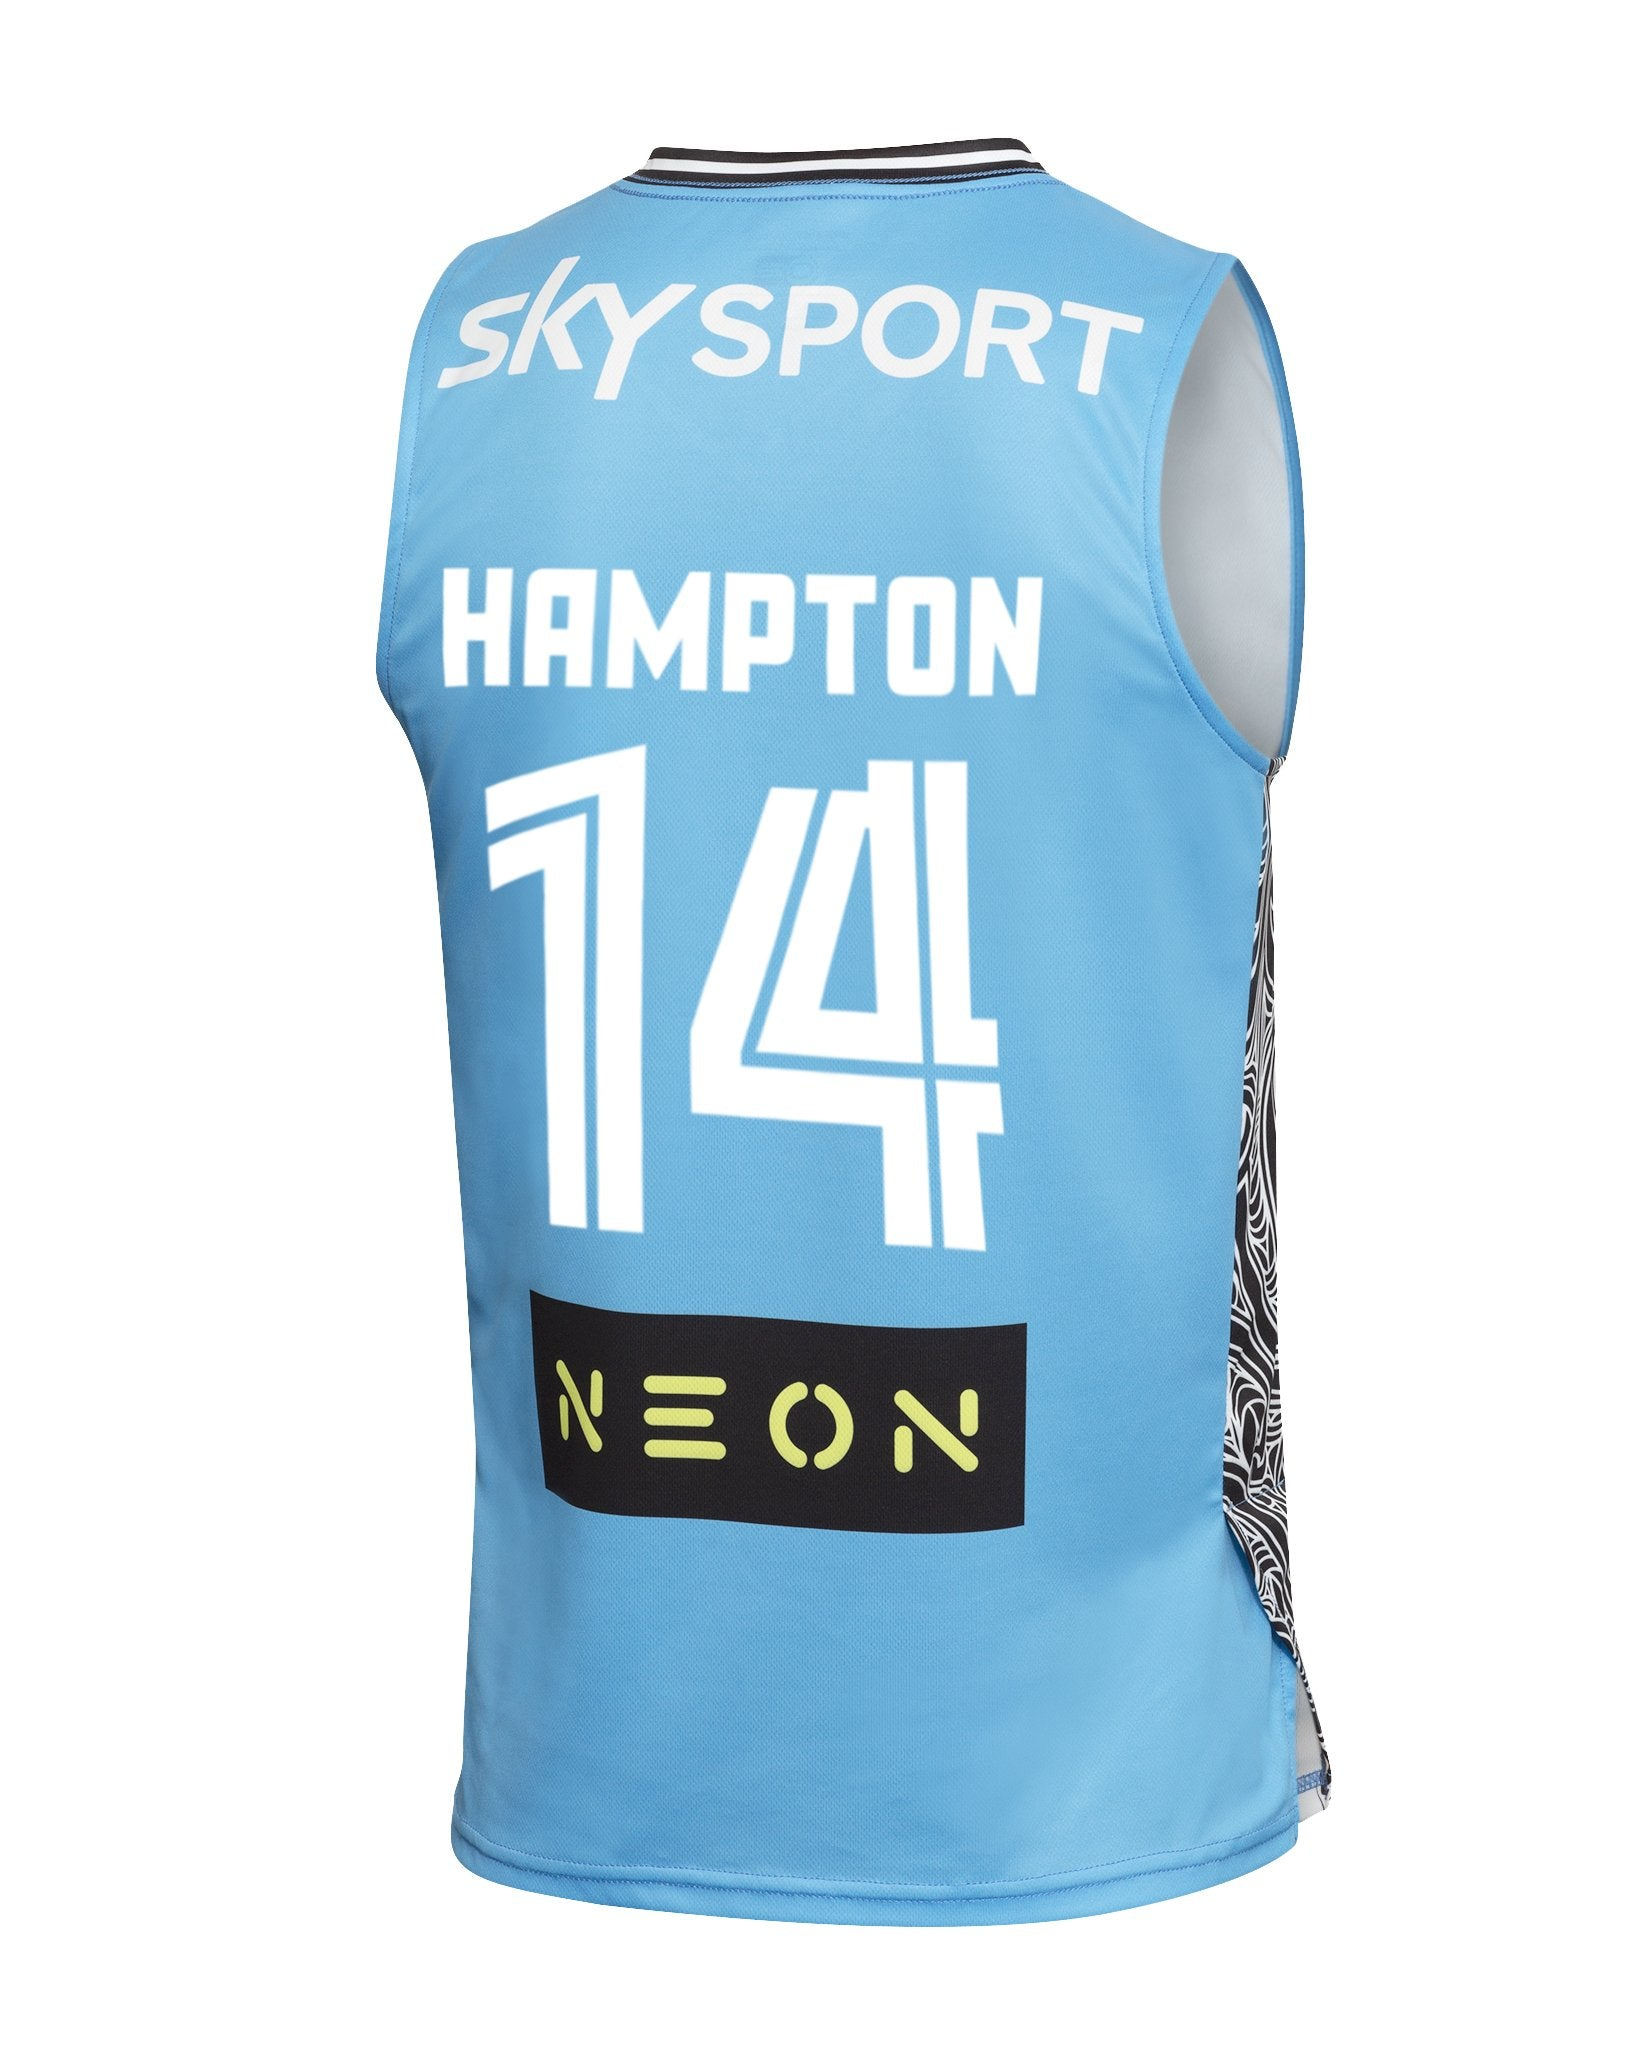 Next Stars 19/20 Away Bundle - Ball & Hampton